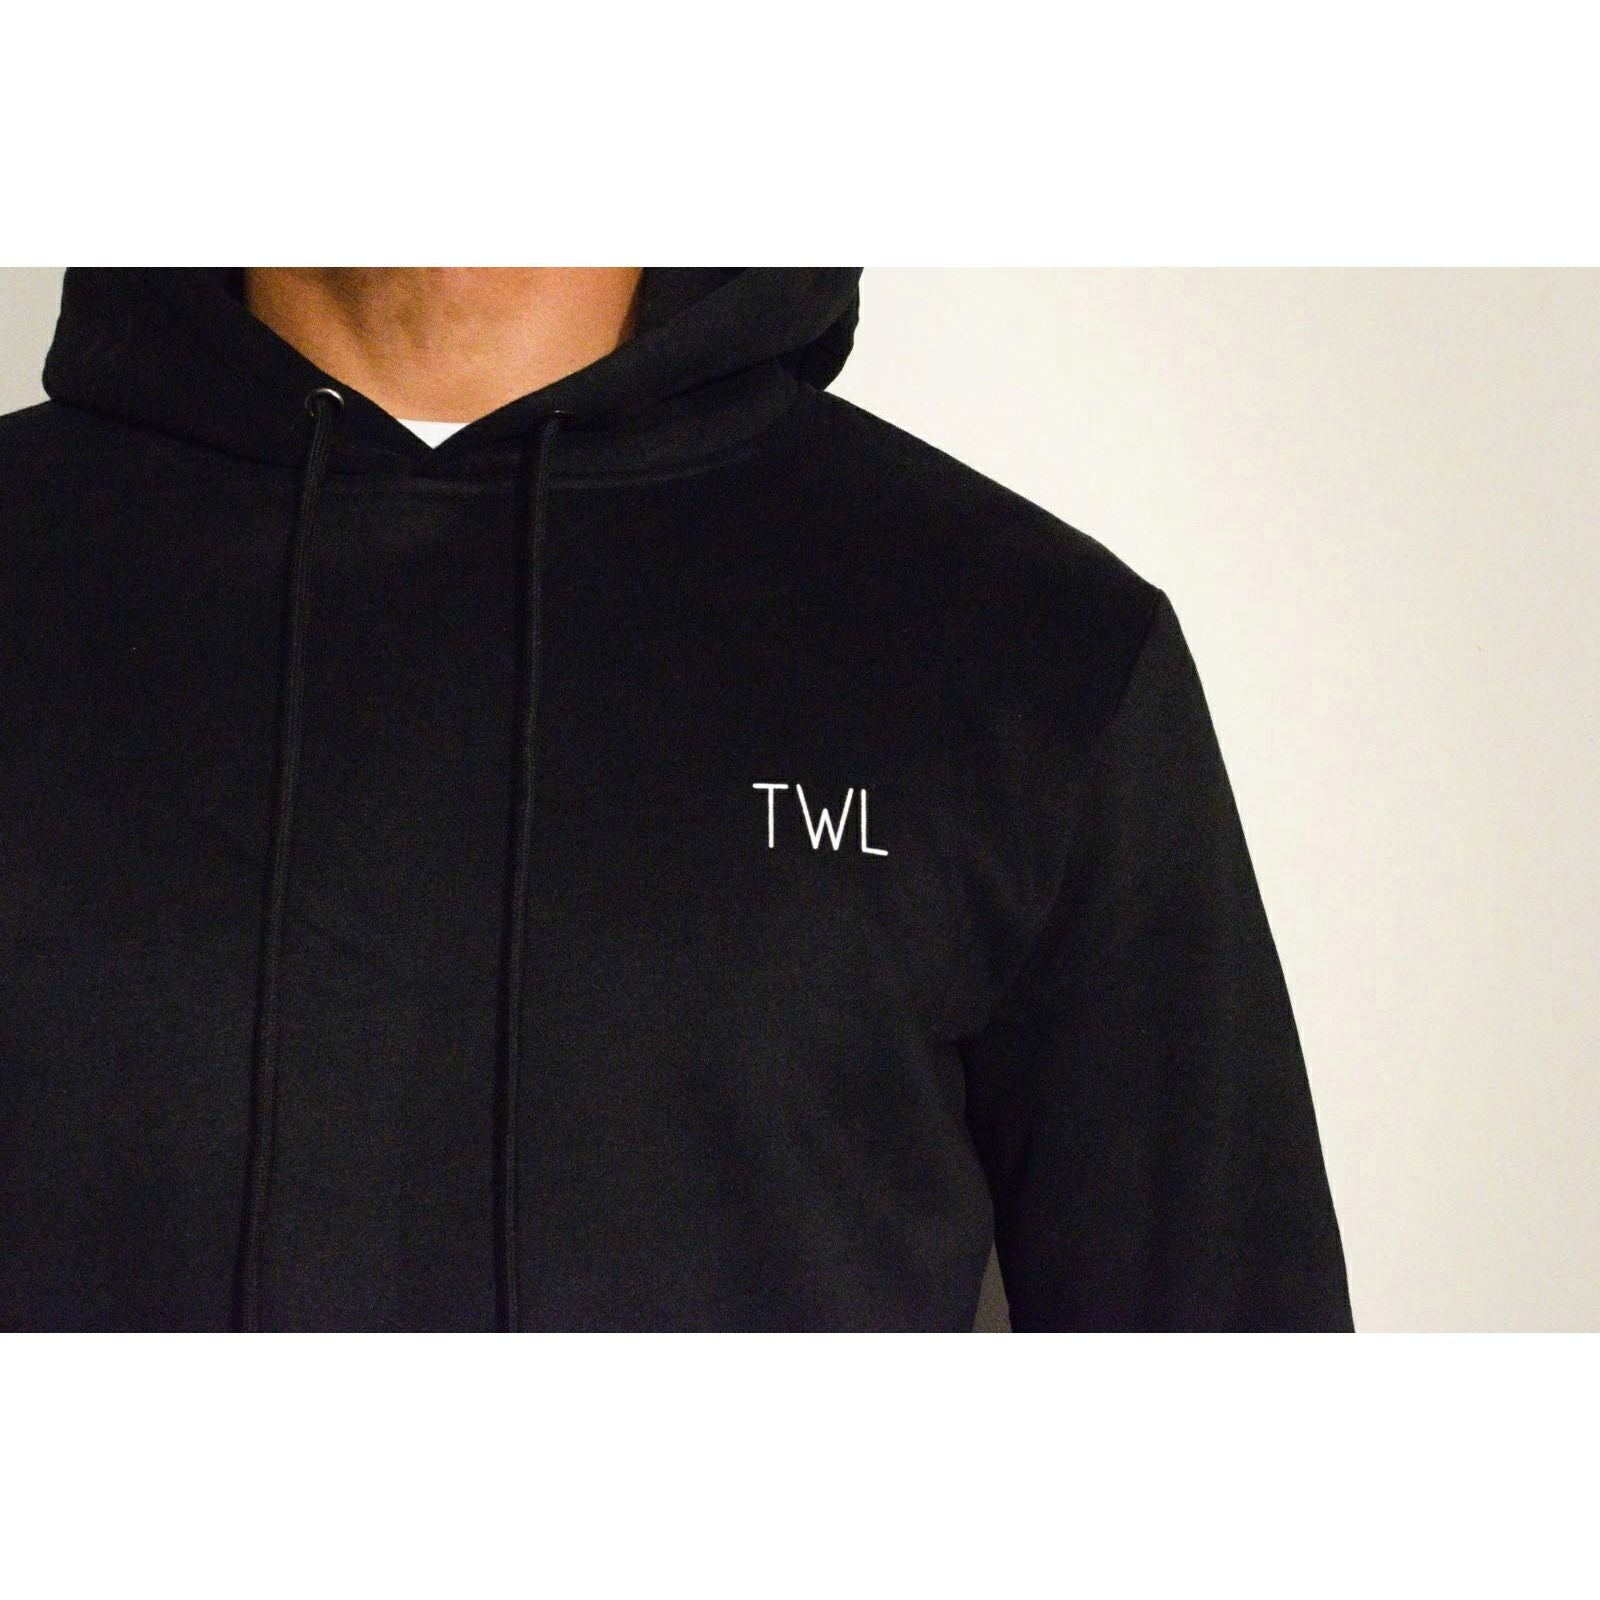 AW17 Black Hoodie - The Wolfe London